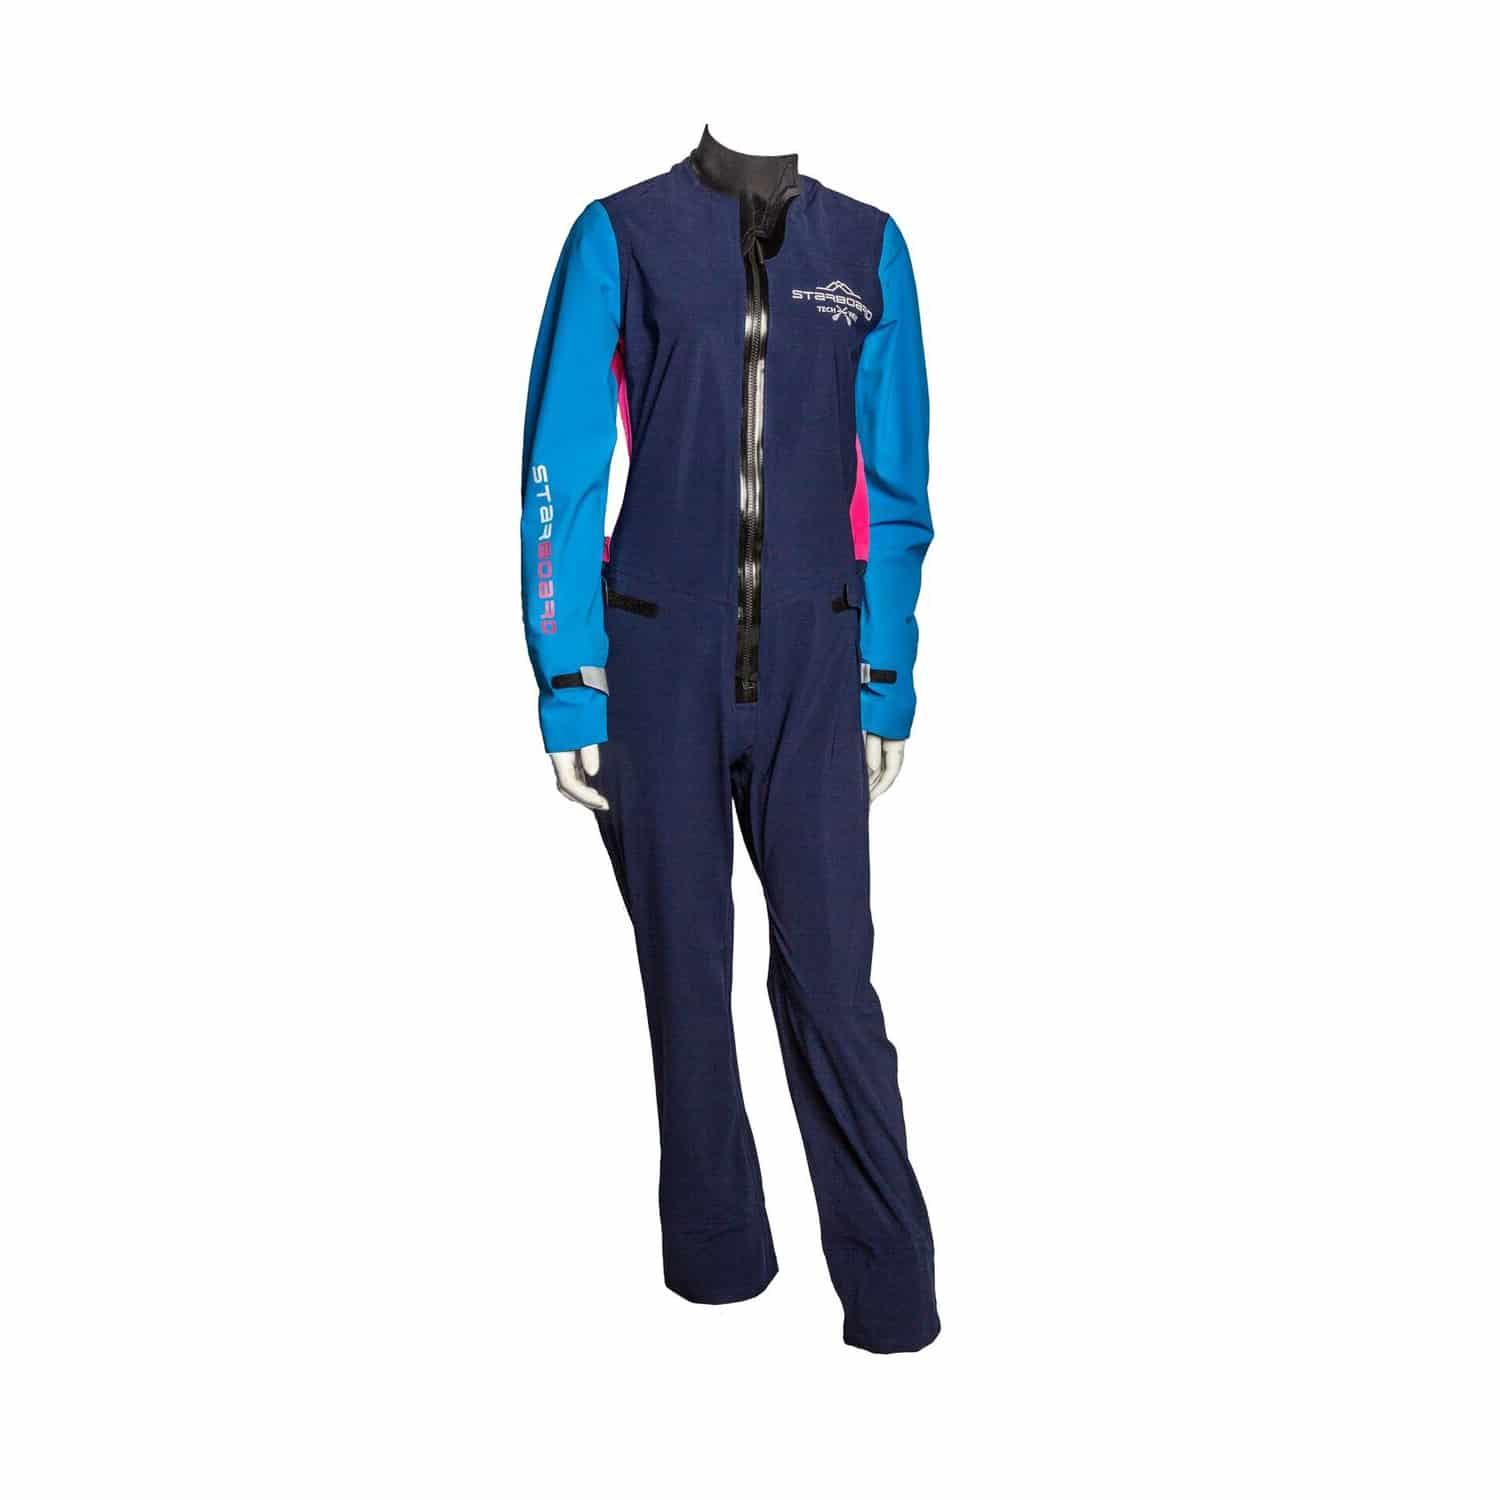 Starboard Damen All Star SUP Suit 2021